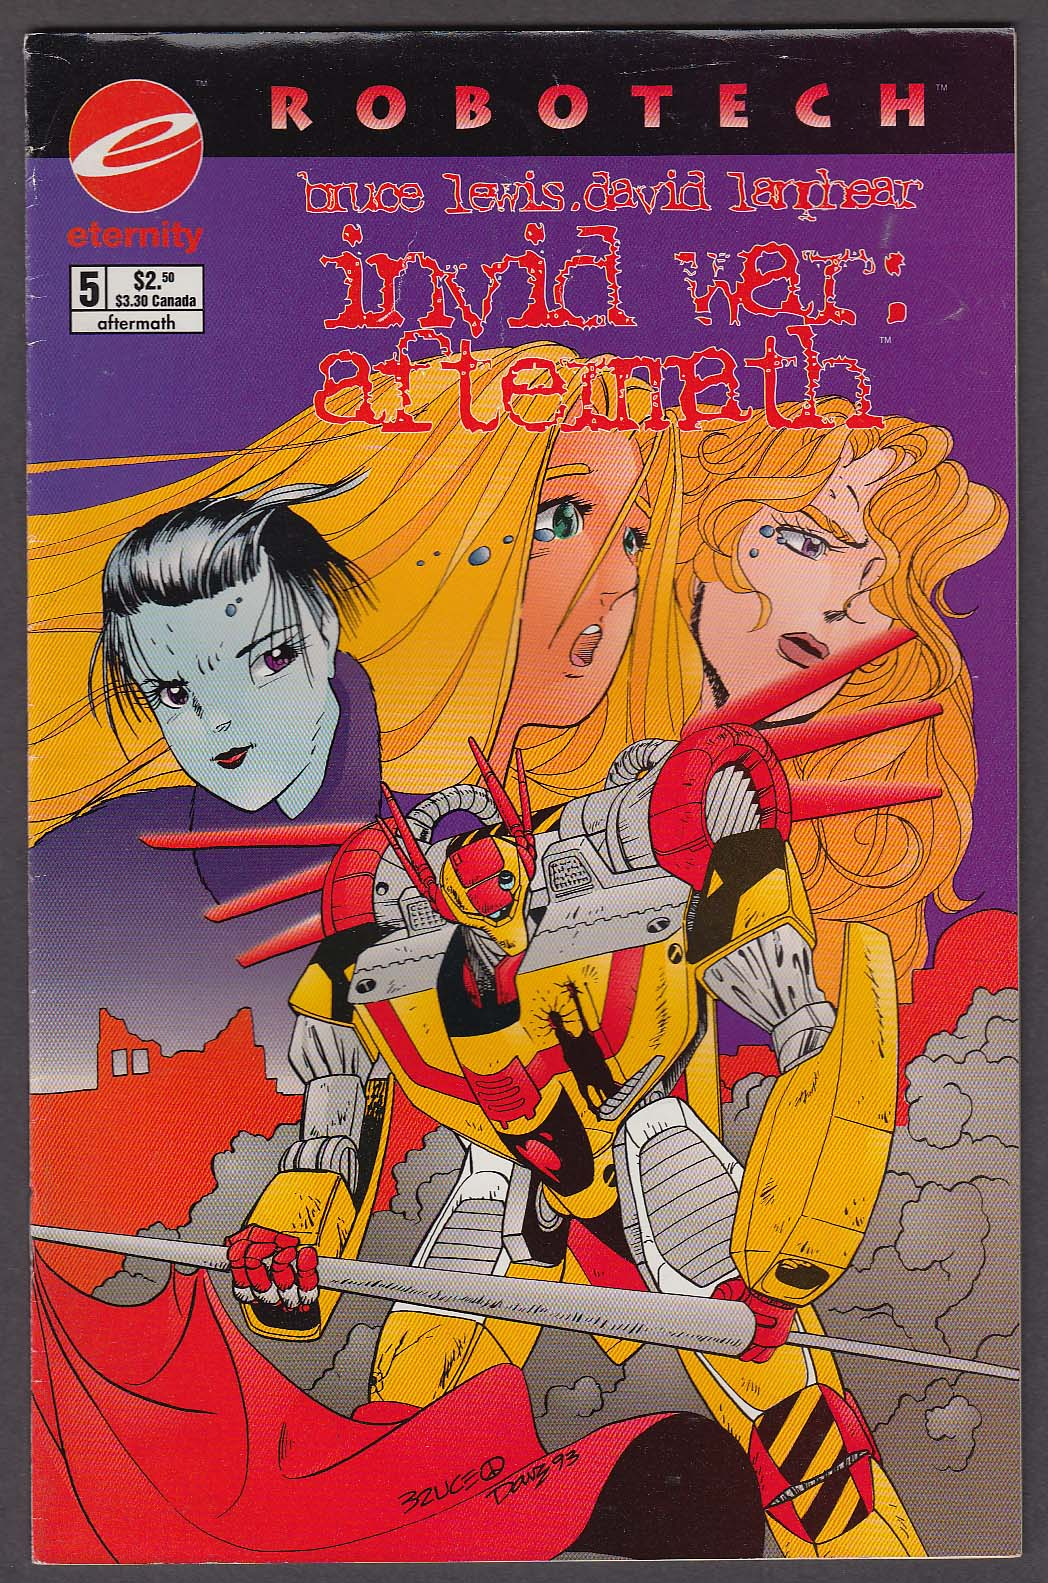 Image for ROBOTECH INVID WAR: AFTERMATH #5 Eternity comic book 1994